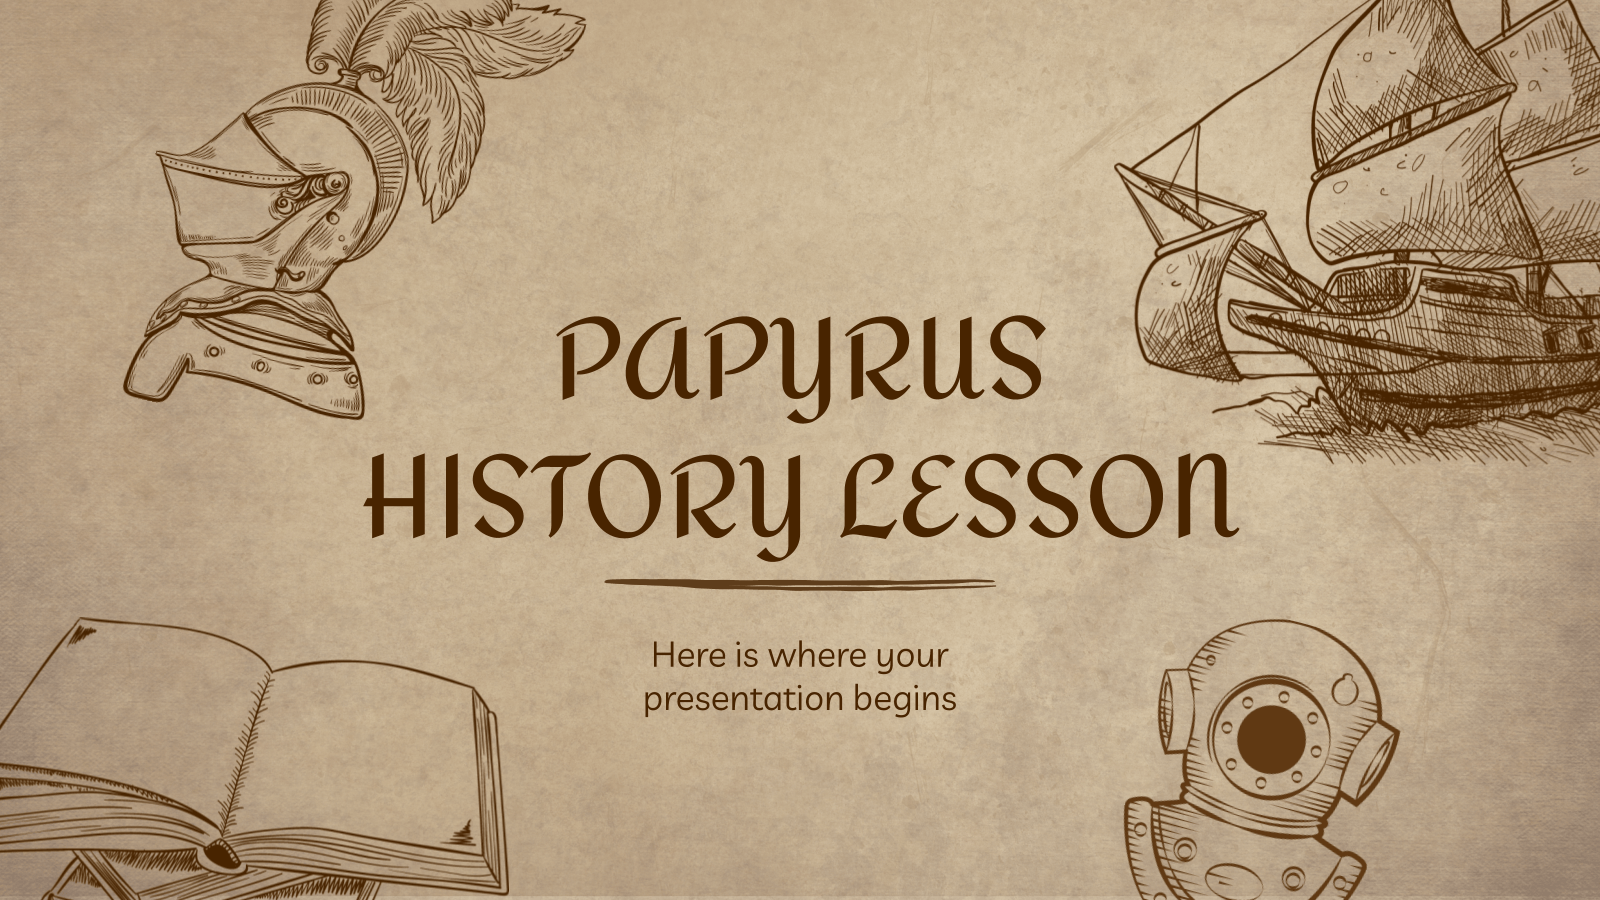 Papyrus History Lesson Google Slides Theme And Powerpoint Template History Lessons Google Slides Themes Ancient History Lessons